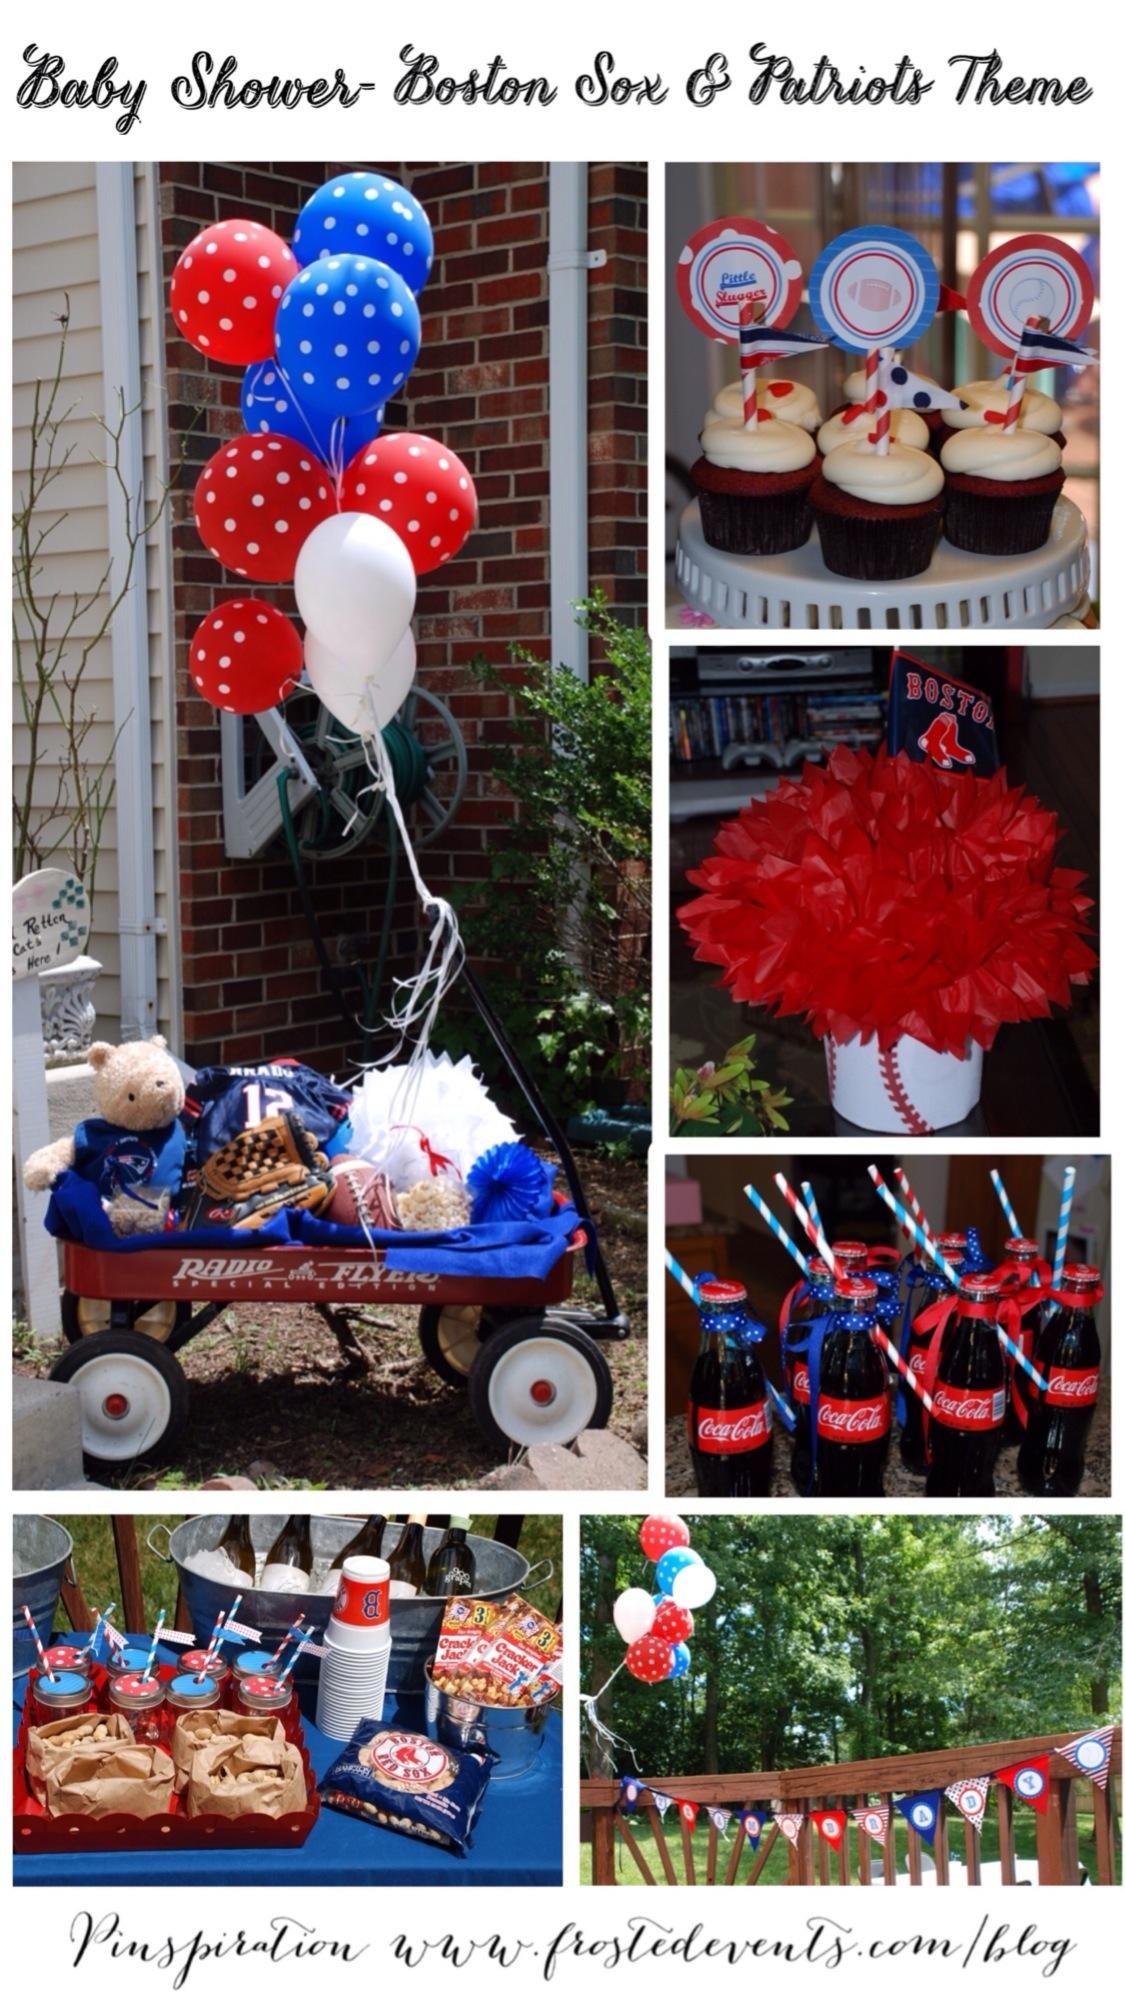 Sports Theme Baby Shower by Frosted Events Boston Red Sox Party Ideas and Inspiration frostedevents.com